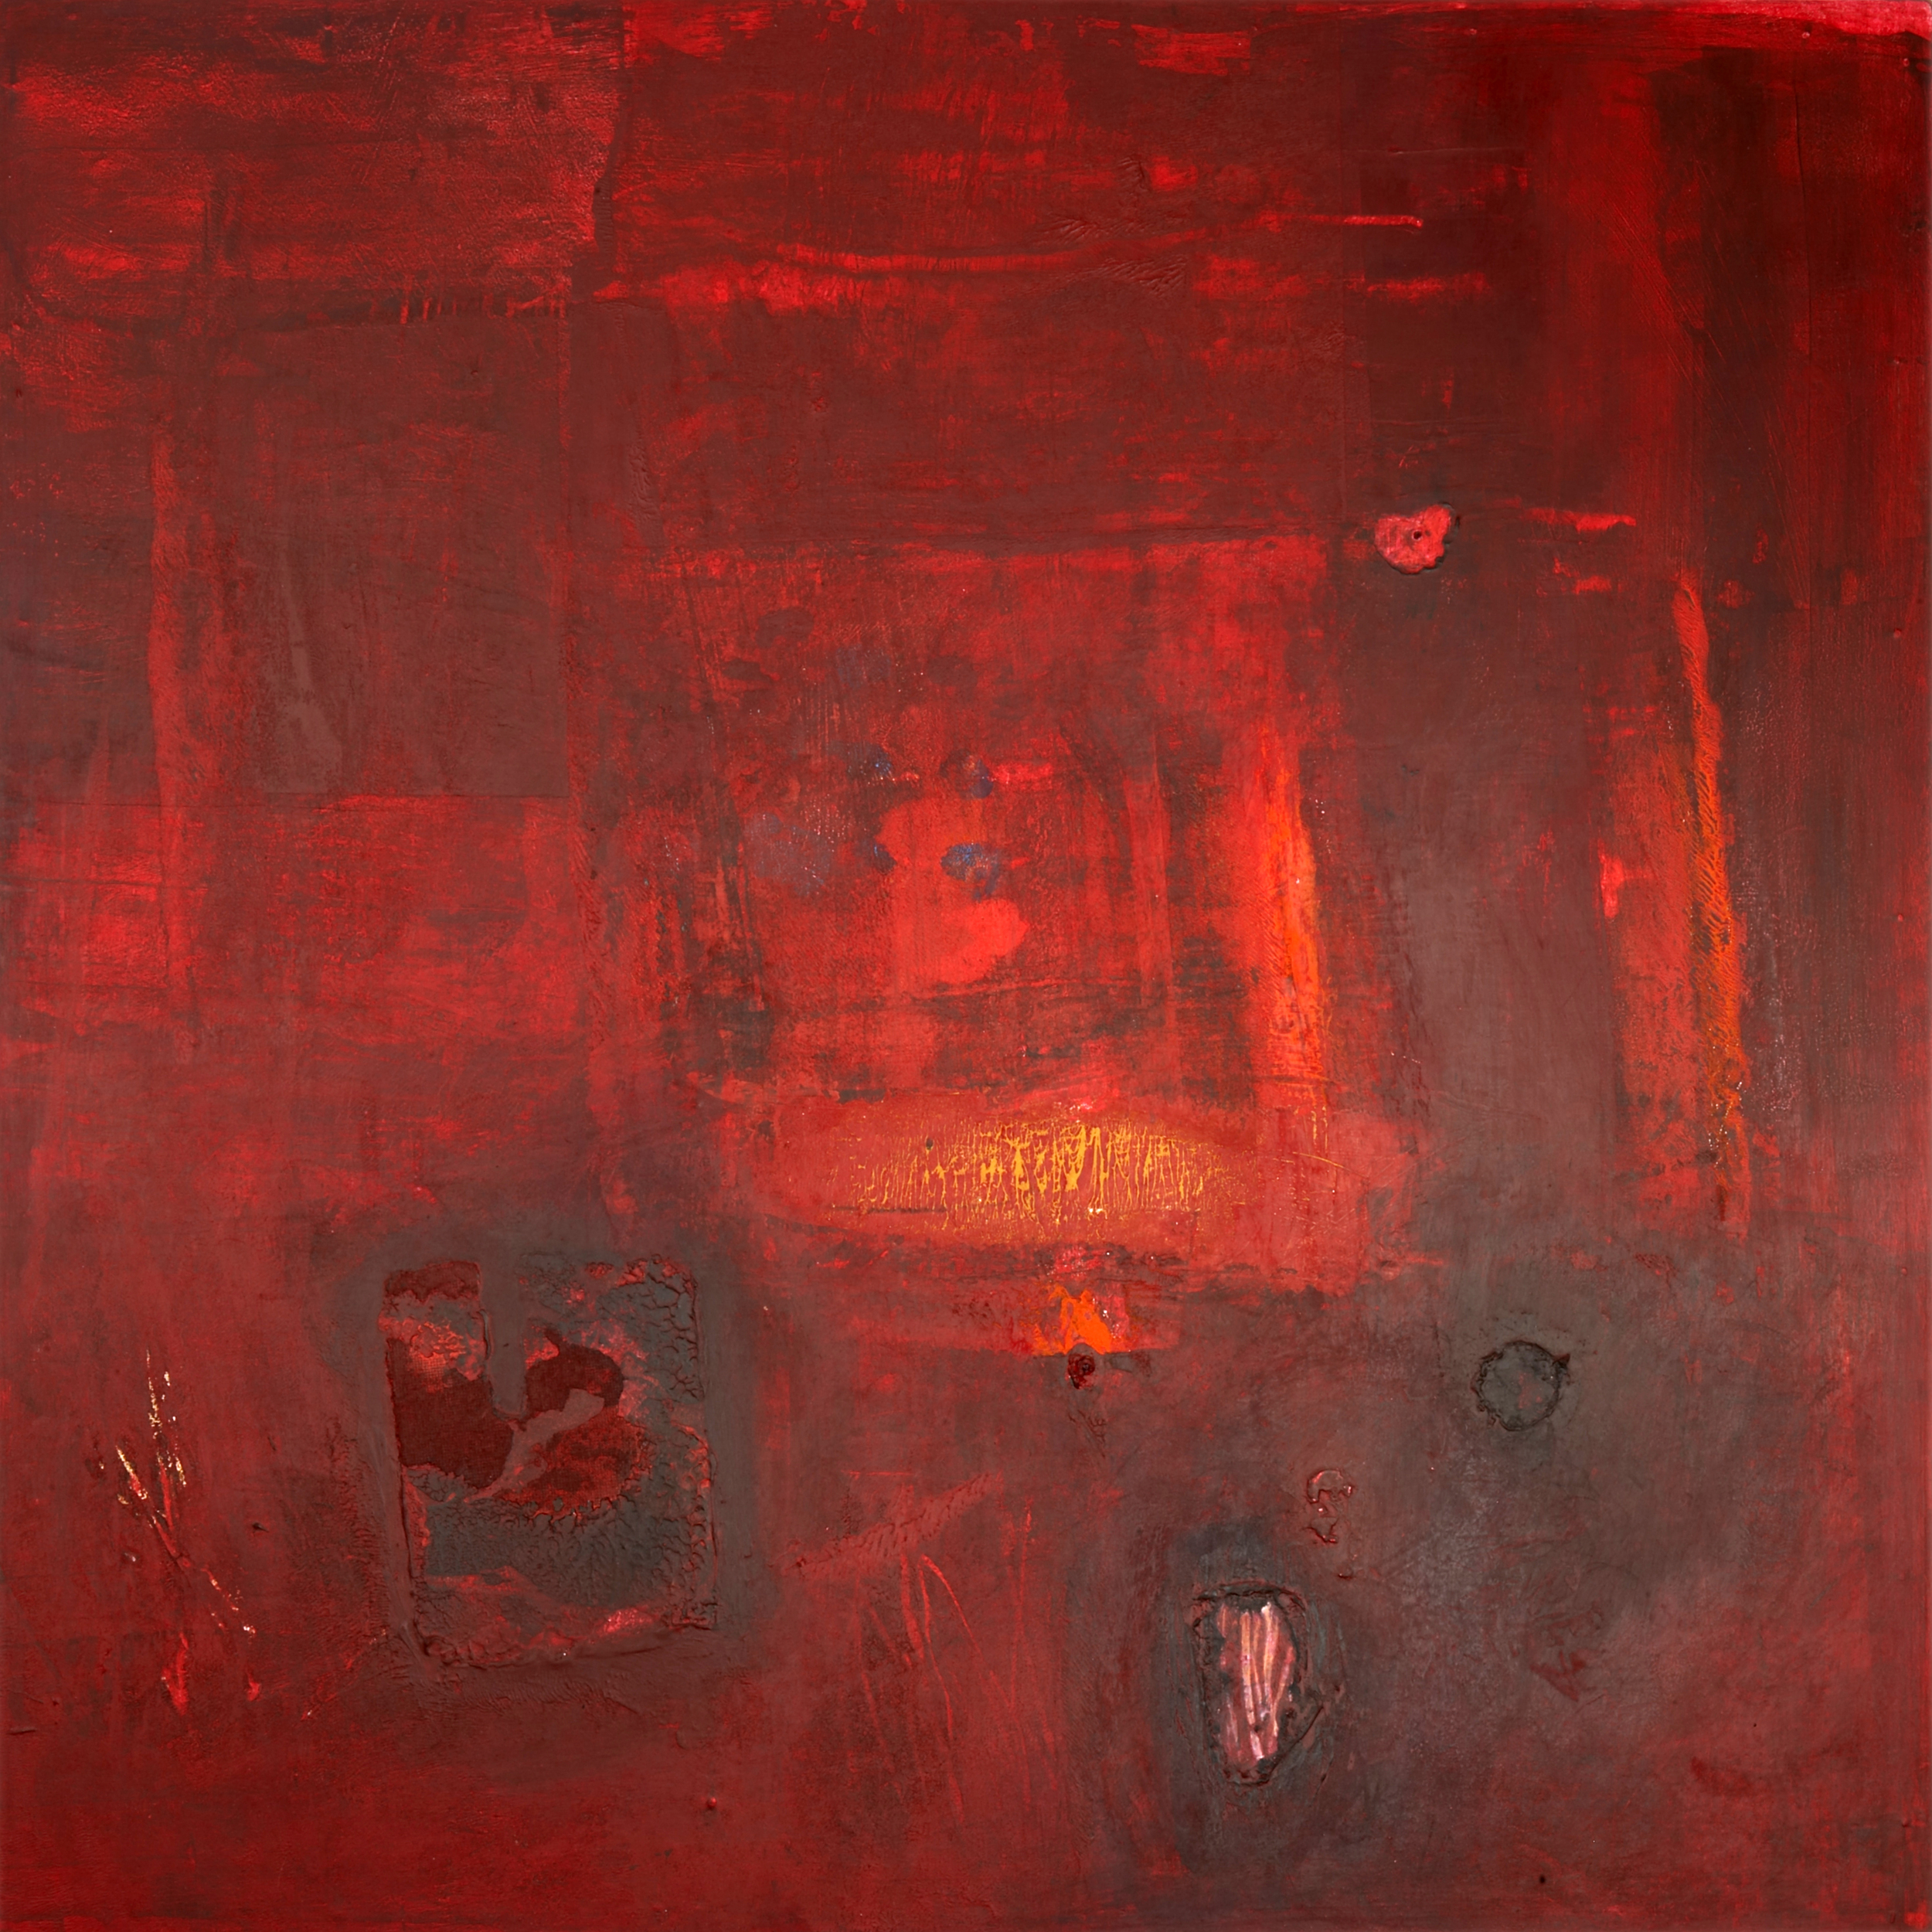 Large Square Red.jpg